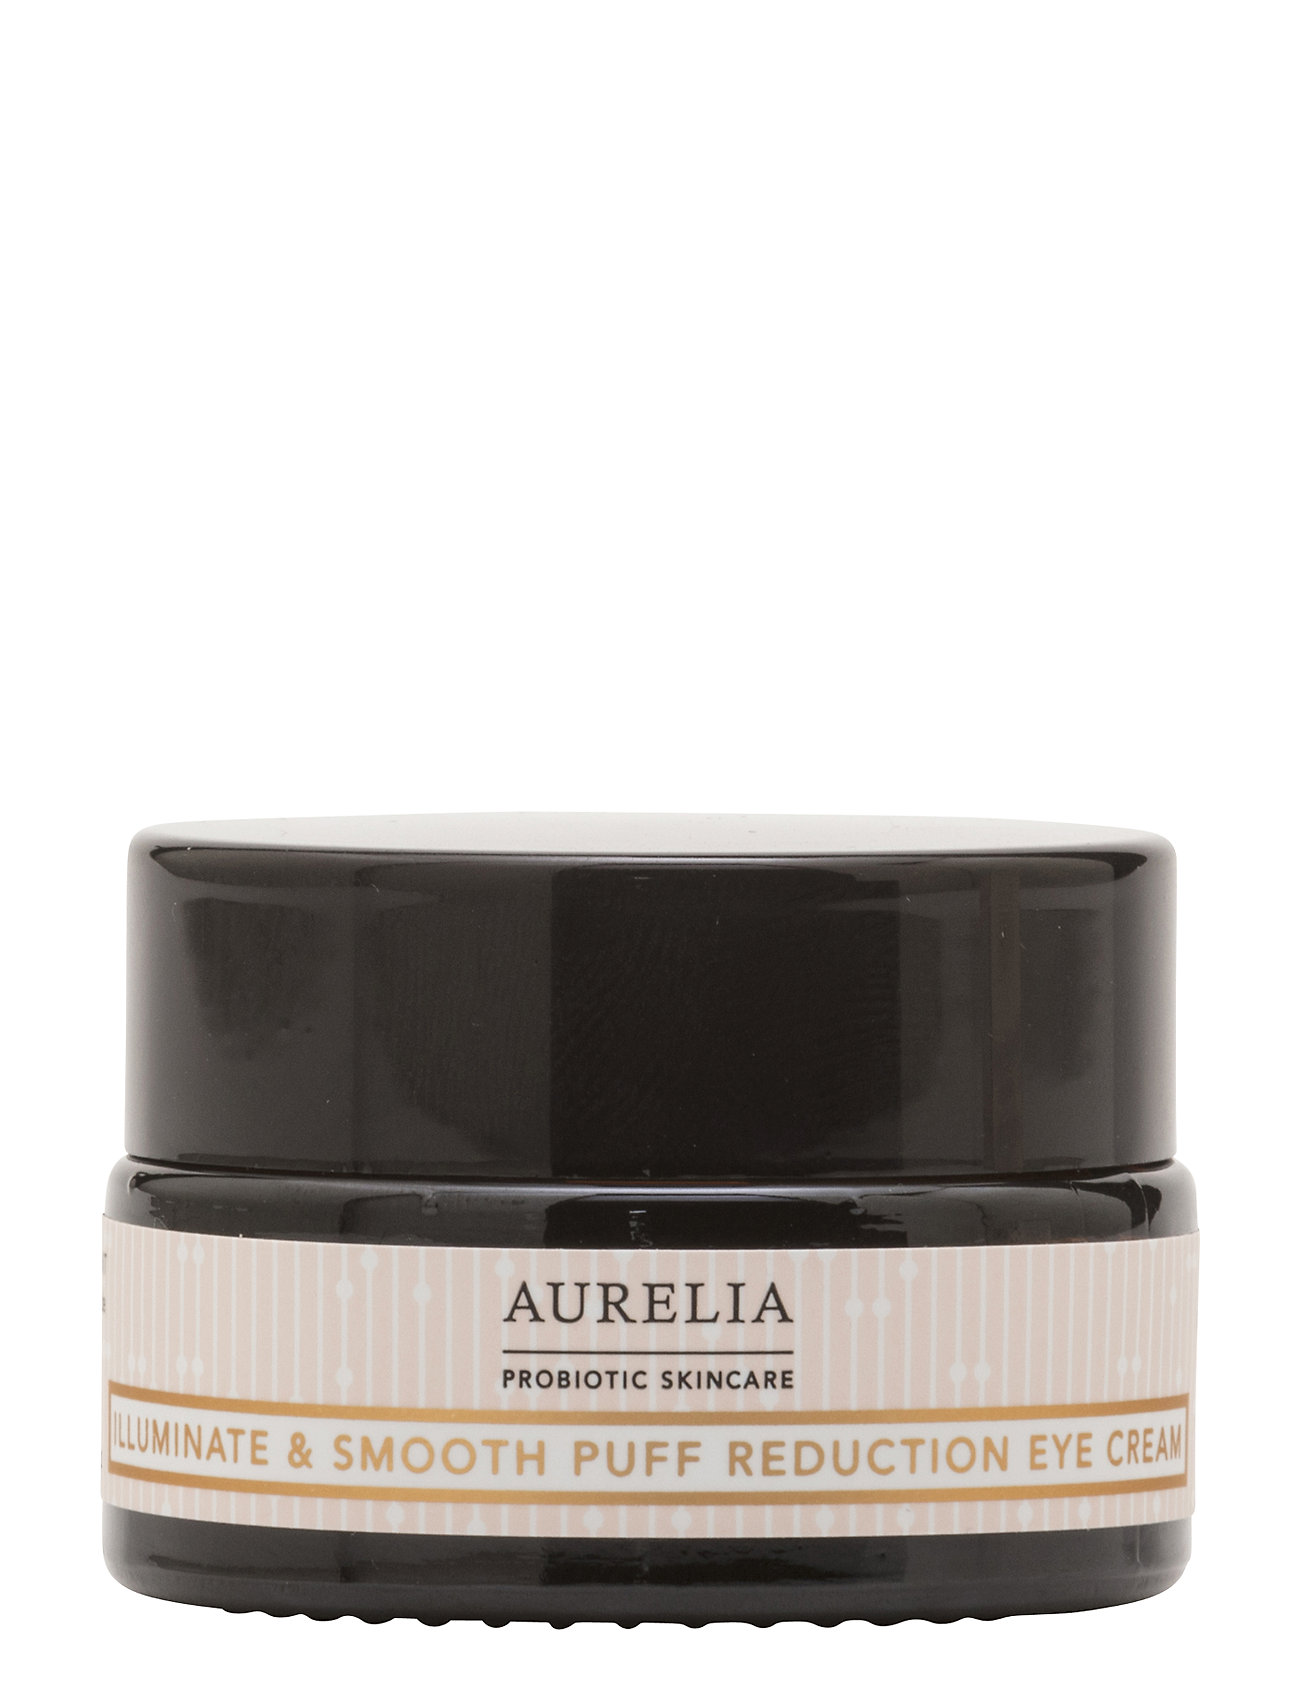 Image of Illuminate And Smooth Puff Reduction Eye Cream Øjencreme Undereye Aurelia Probiotic Skincare (3105944205)